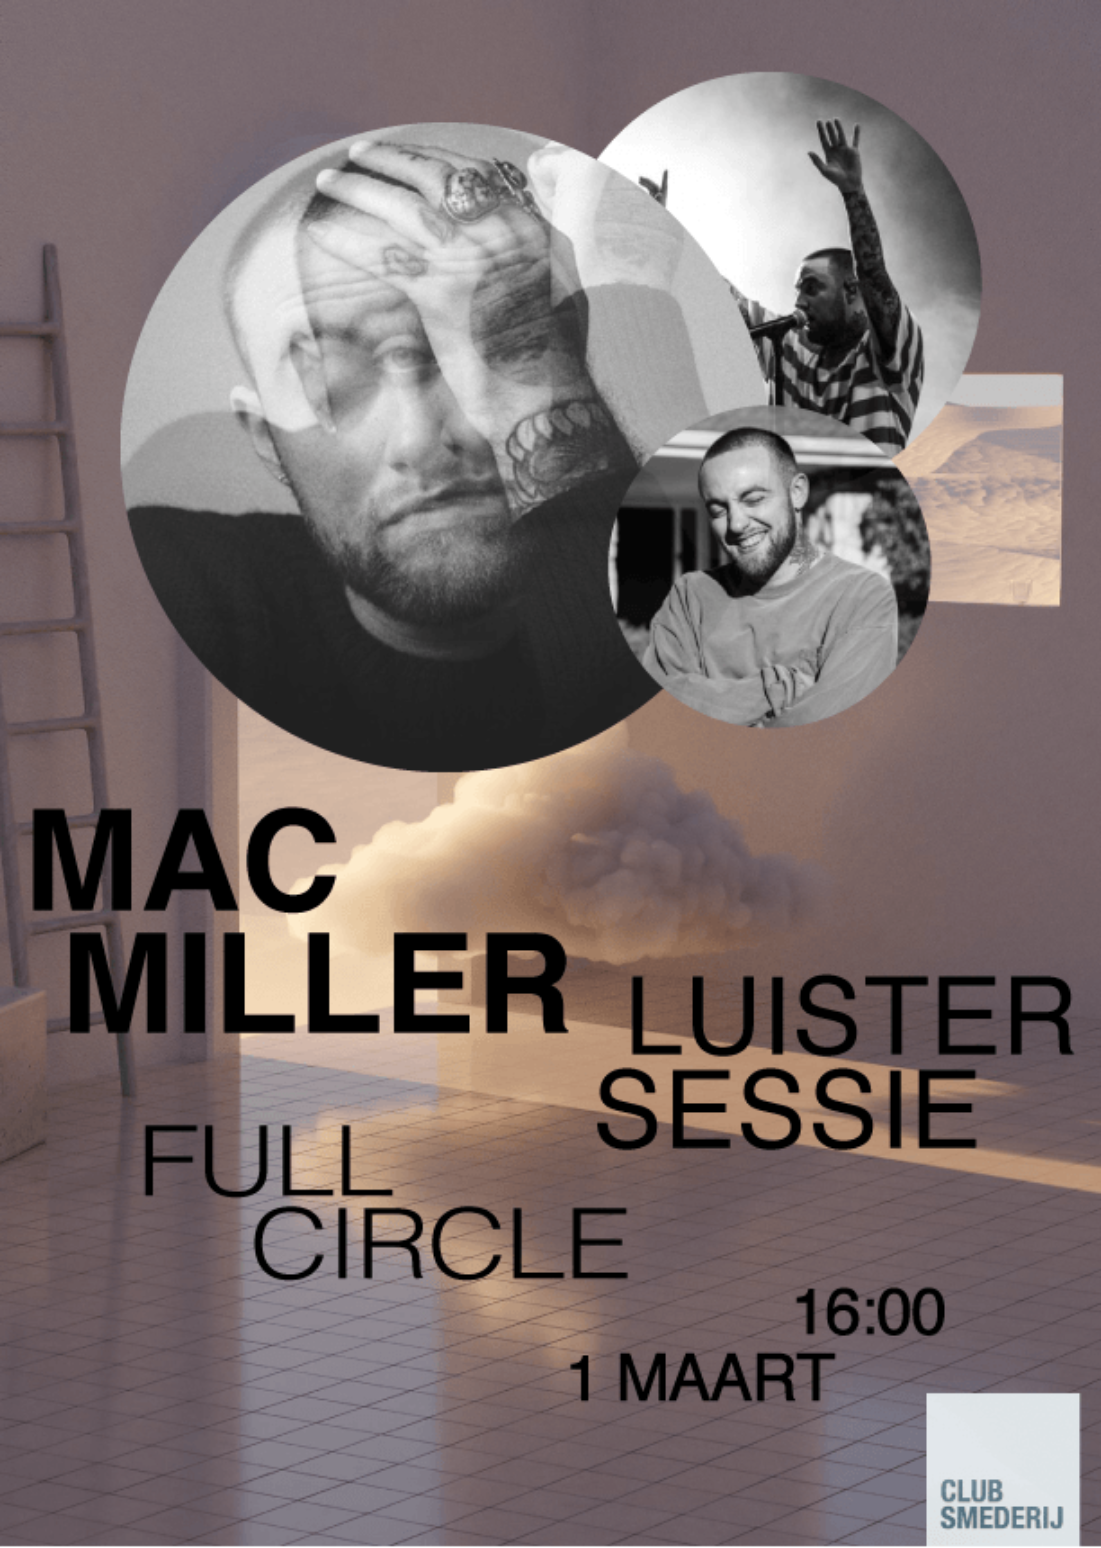 Mac Miller luistersessie: Full Circle